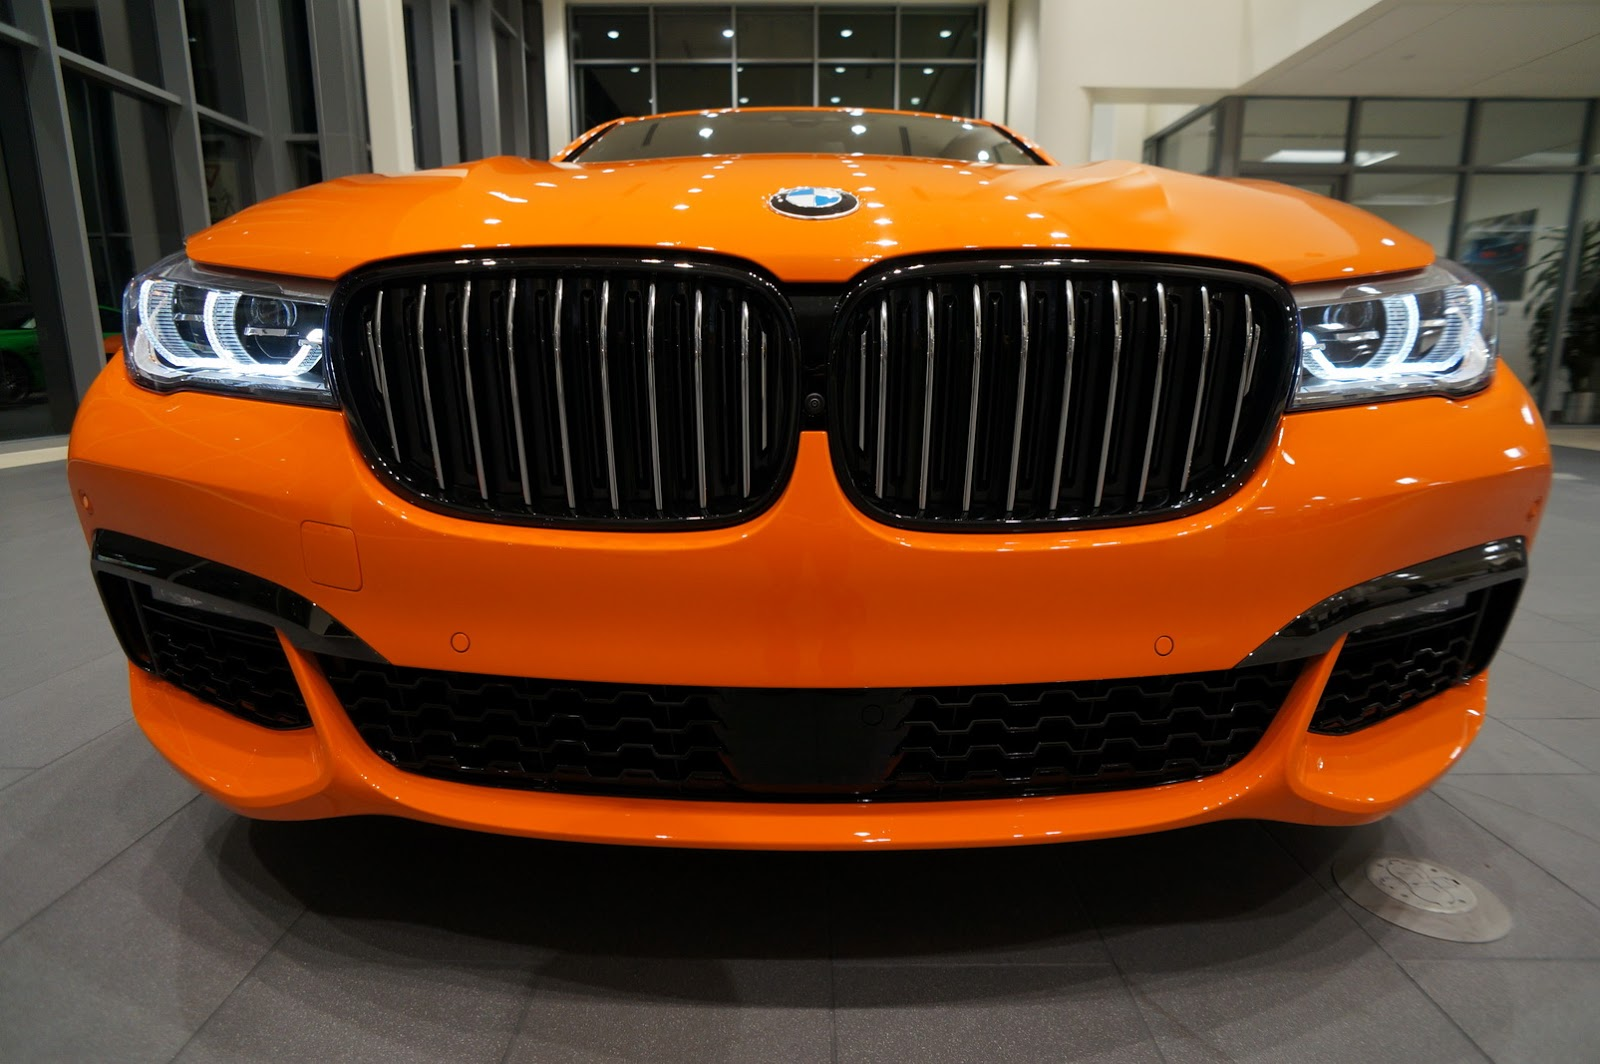 BMW_750i_Fire_Orange_25